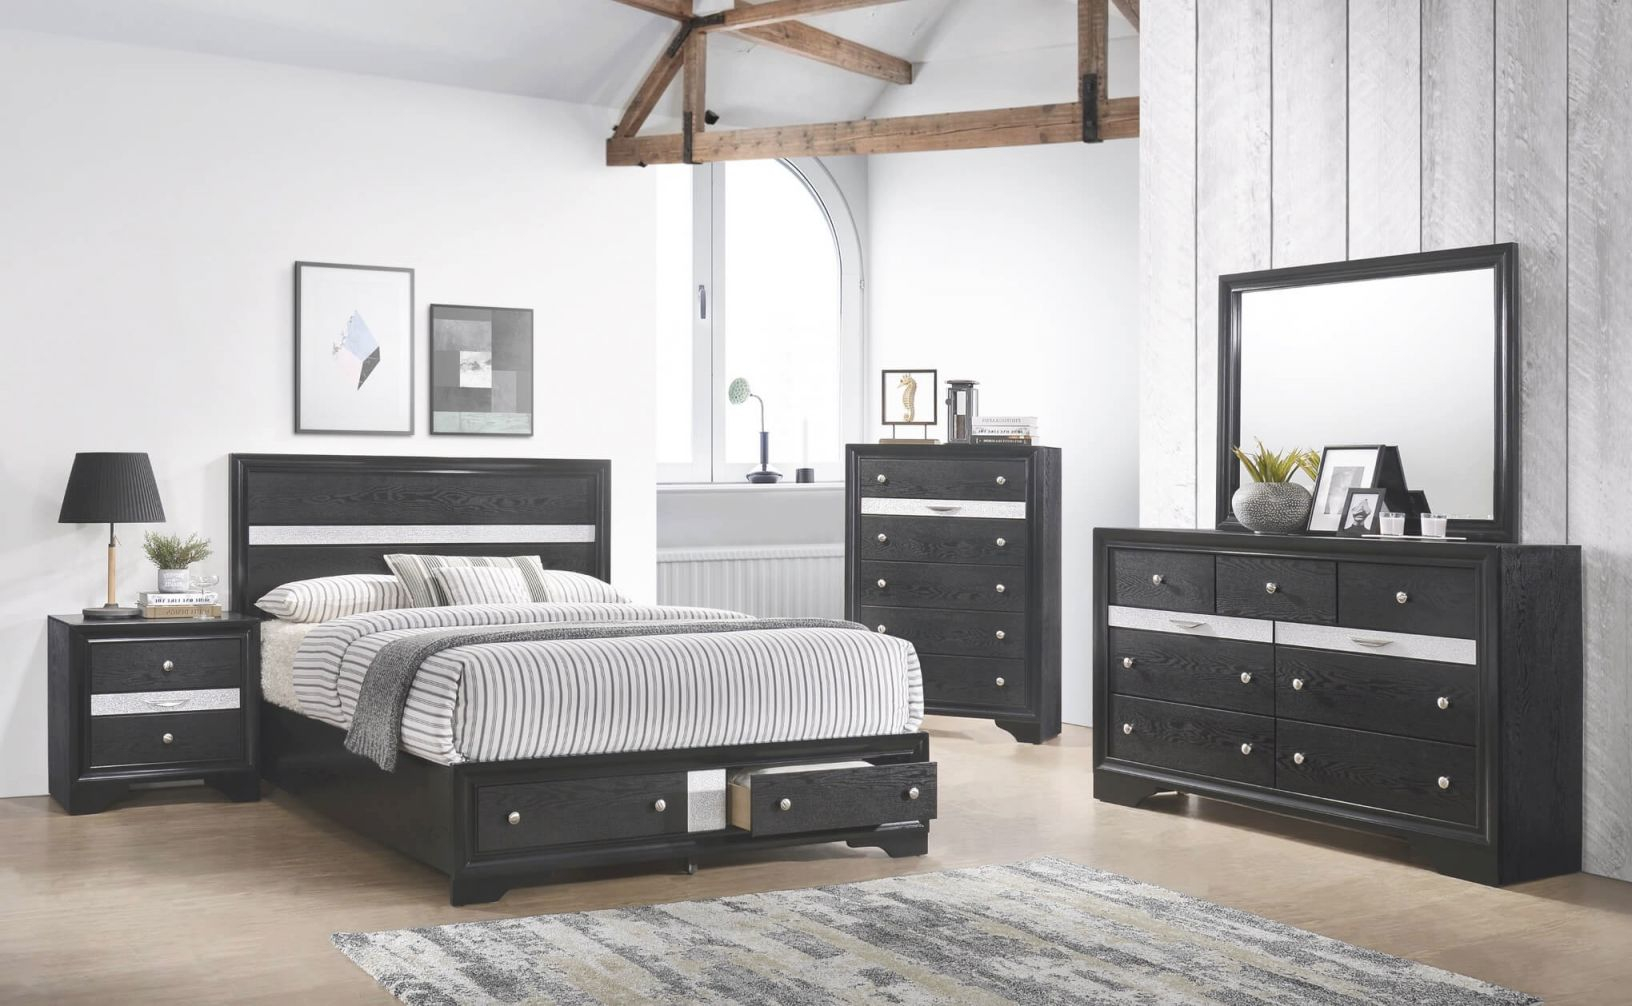 B4670 Regata Black Storage Bedroom Set regarding Bedroom Set Queen Size